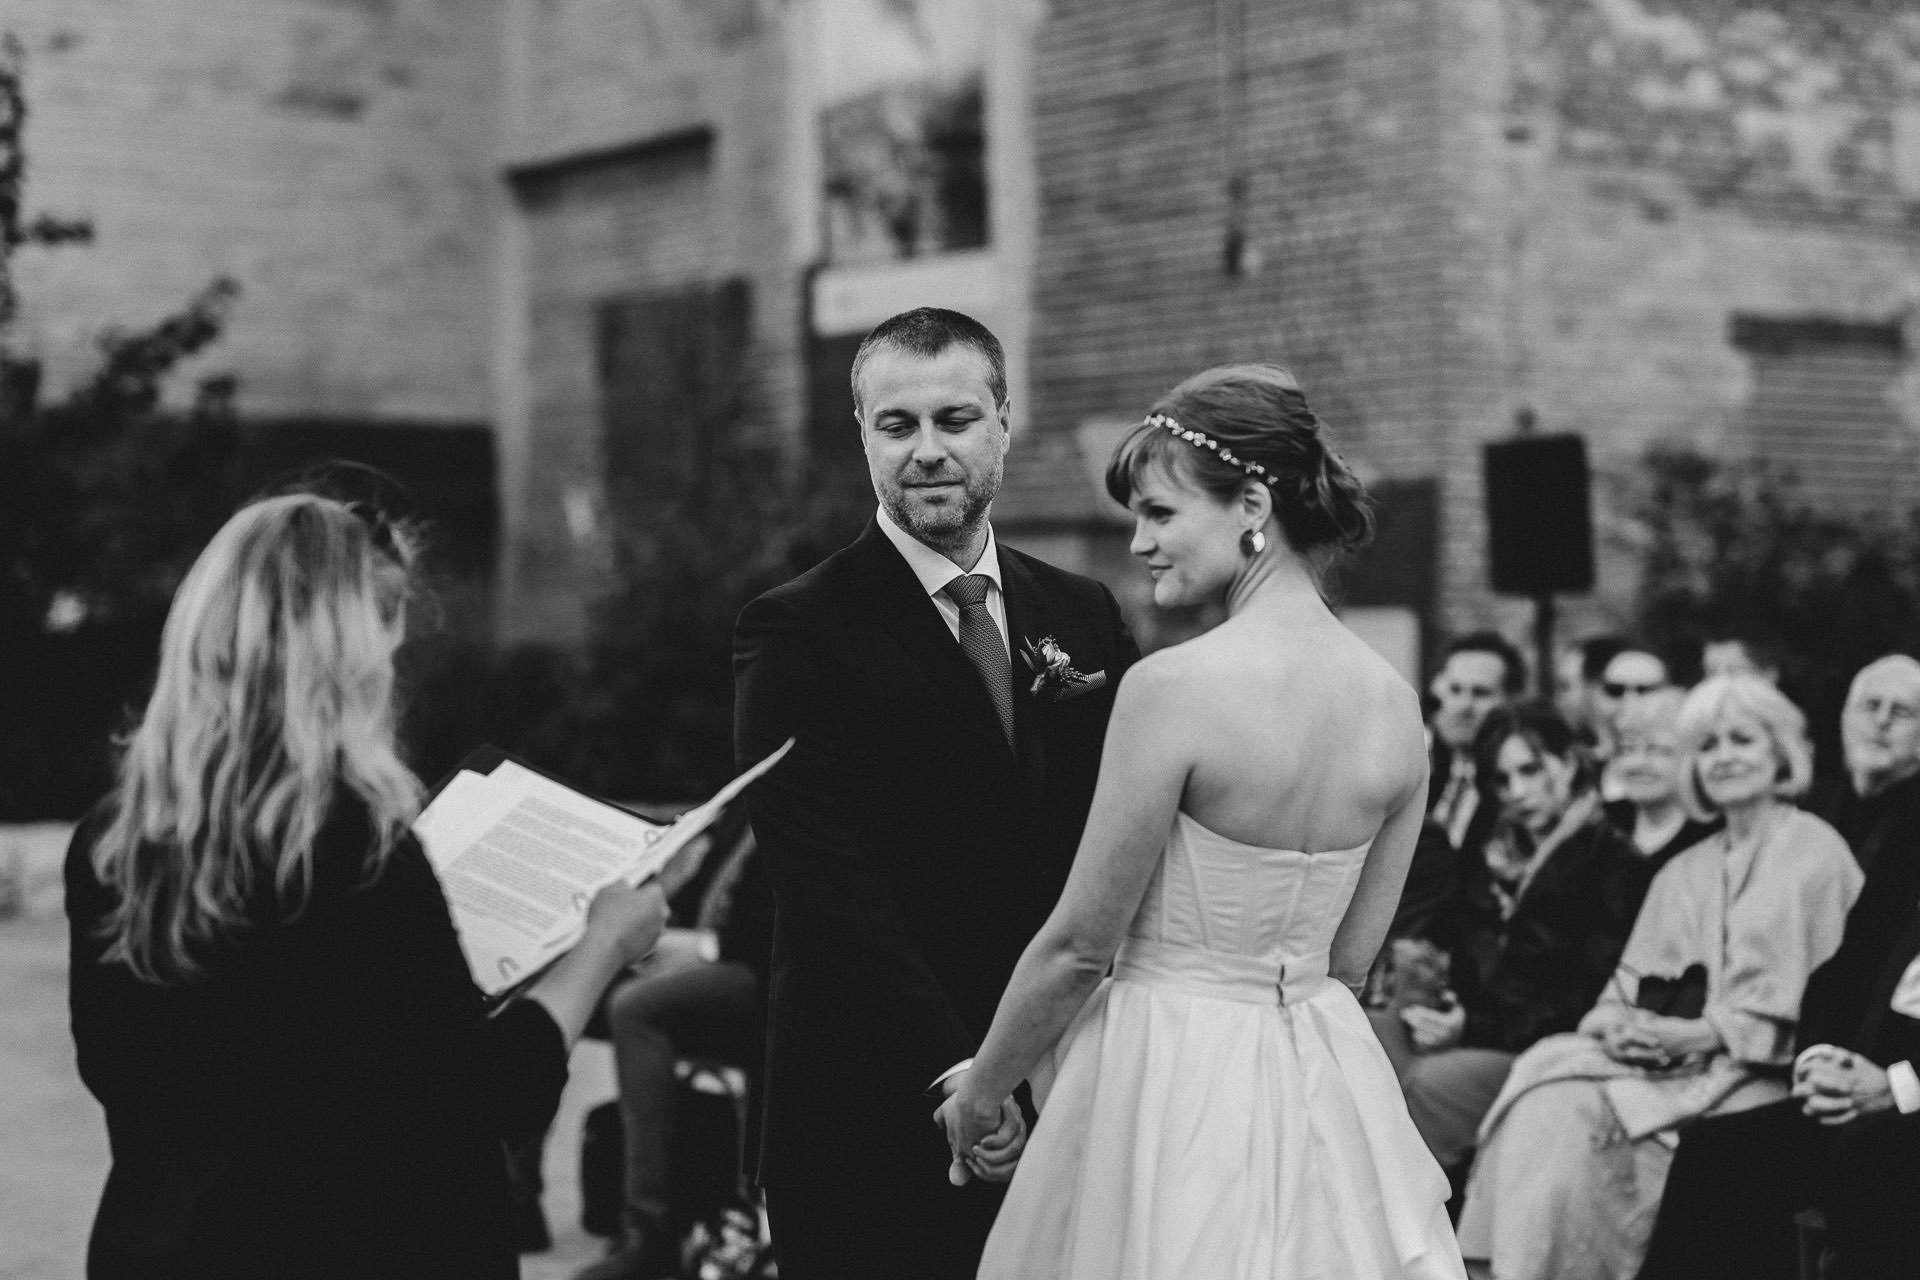 Evergreen Brickworks wedding photographer - urban outdoor ceremony